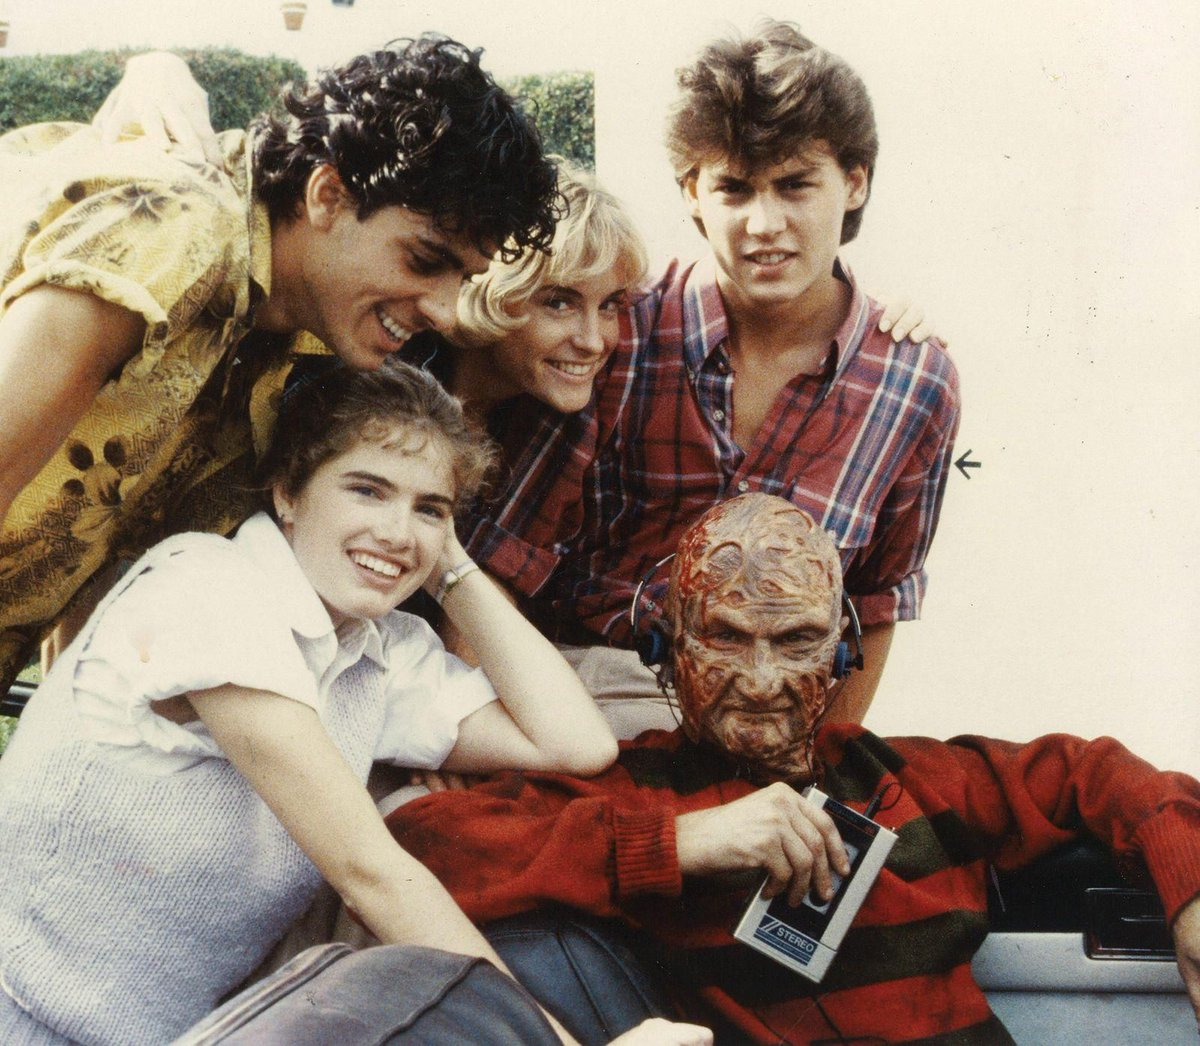 The cast of A Nightmare on Elm Street (1984) #behindthescenes #filmmaking pic.twitter.com/9HUexEGHIe